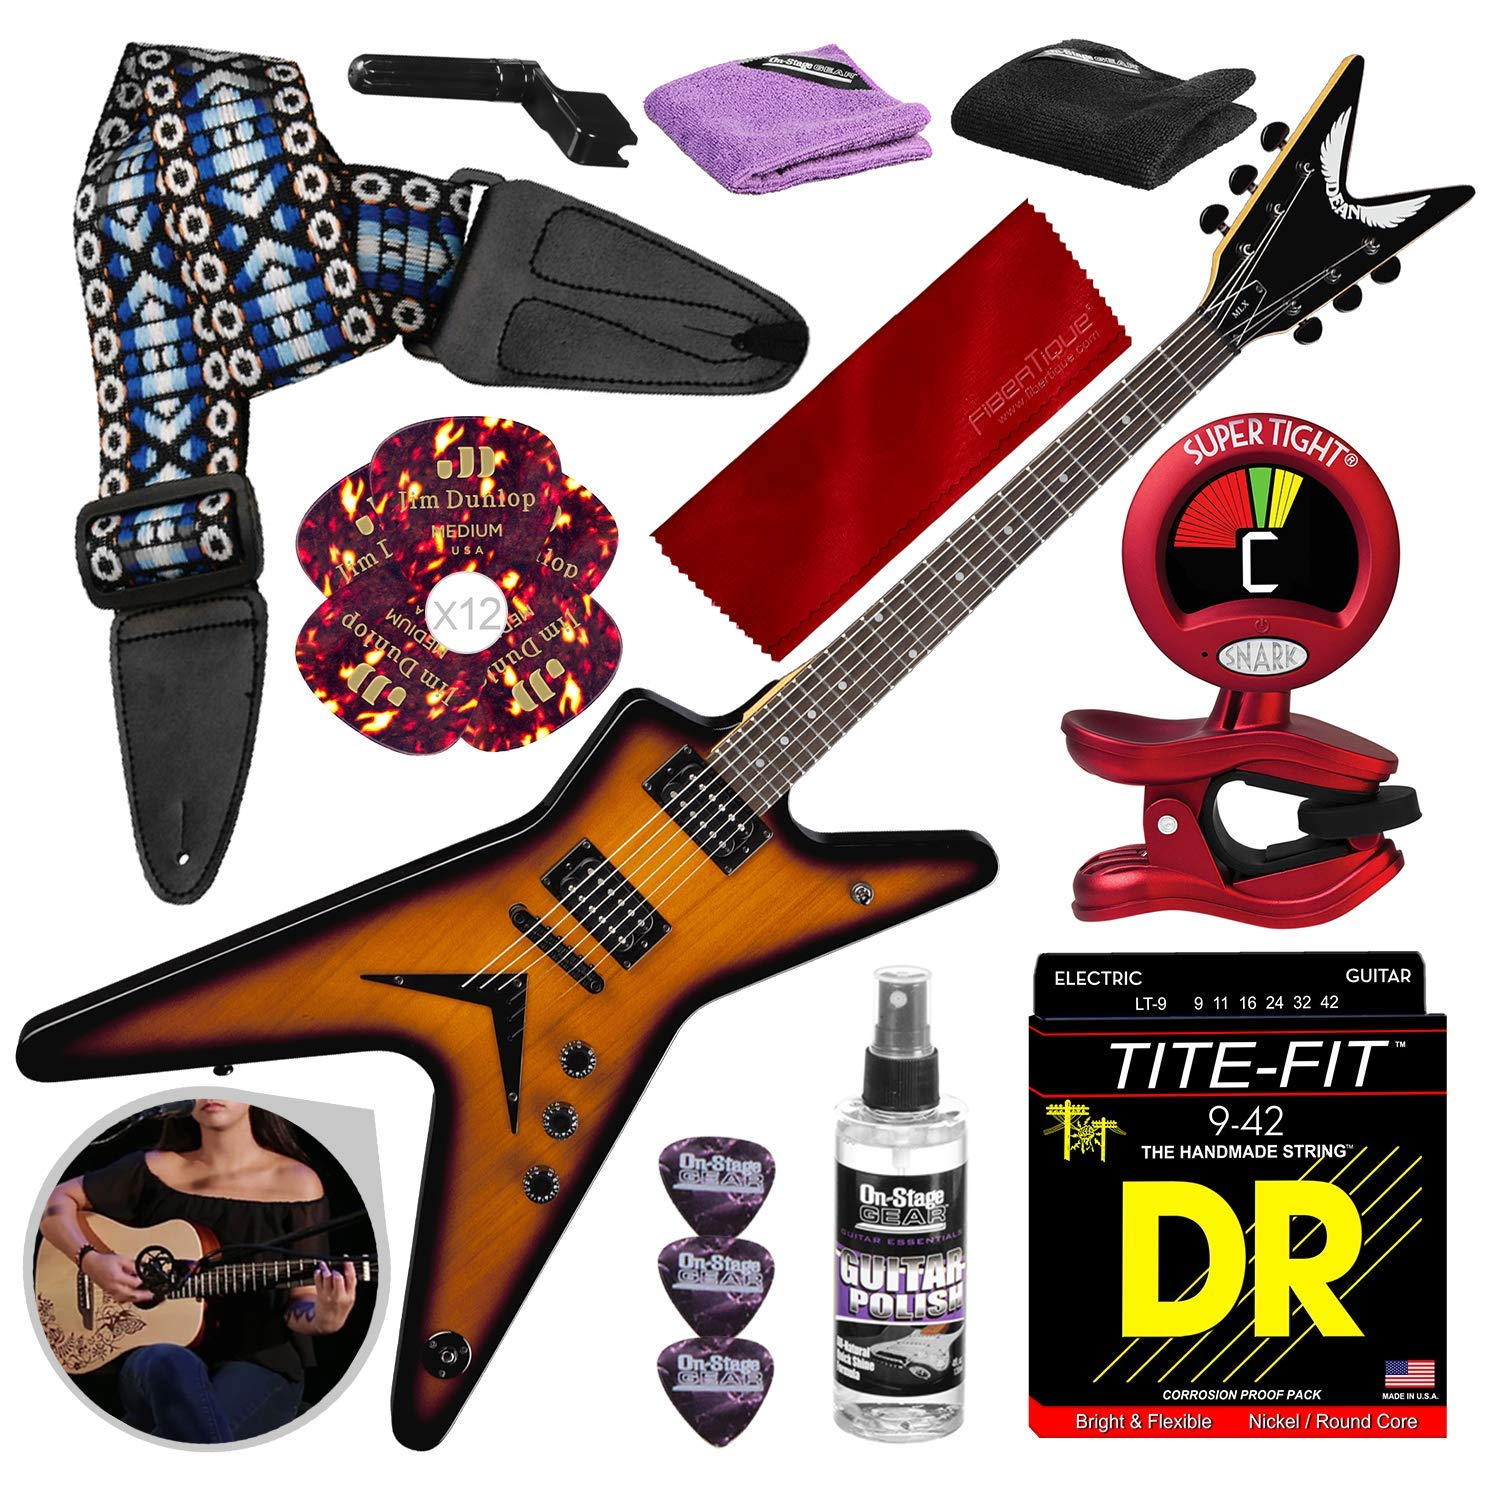 Cheap Dean MLX Electric Guitar Trans Brazilia with Guitar Strap Strings Picks Deluxe Accessory Bundle Black Friday & Cyber Monday 2019